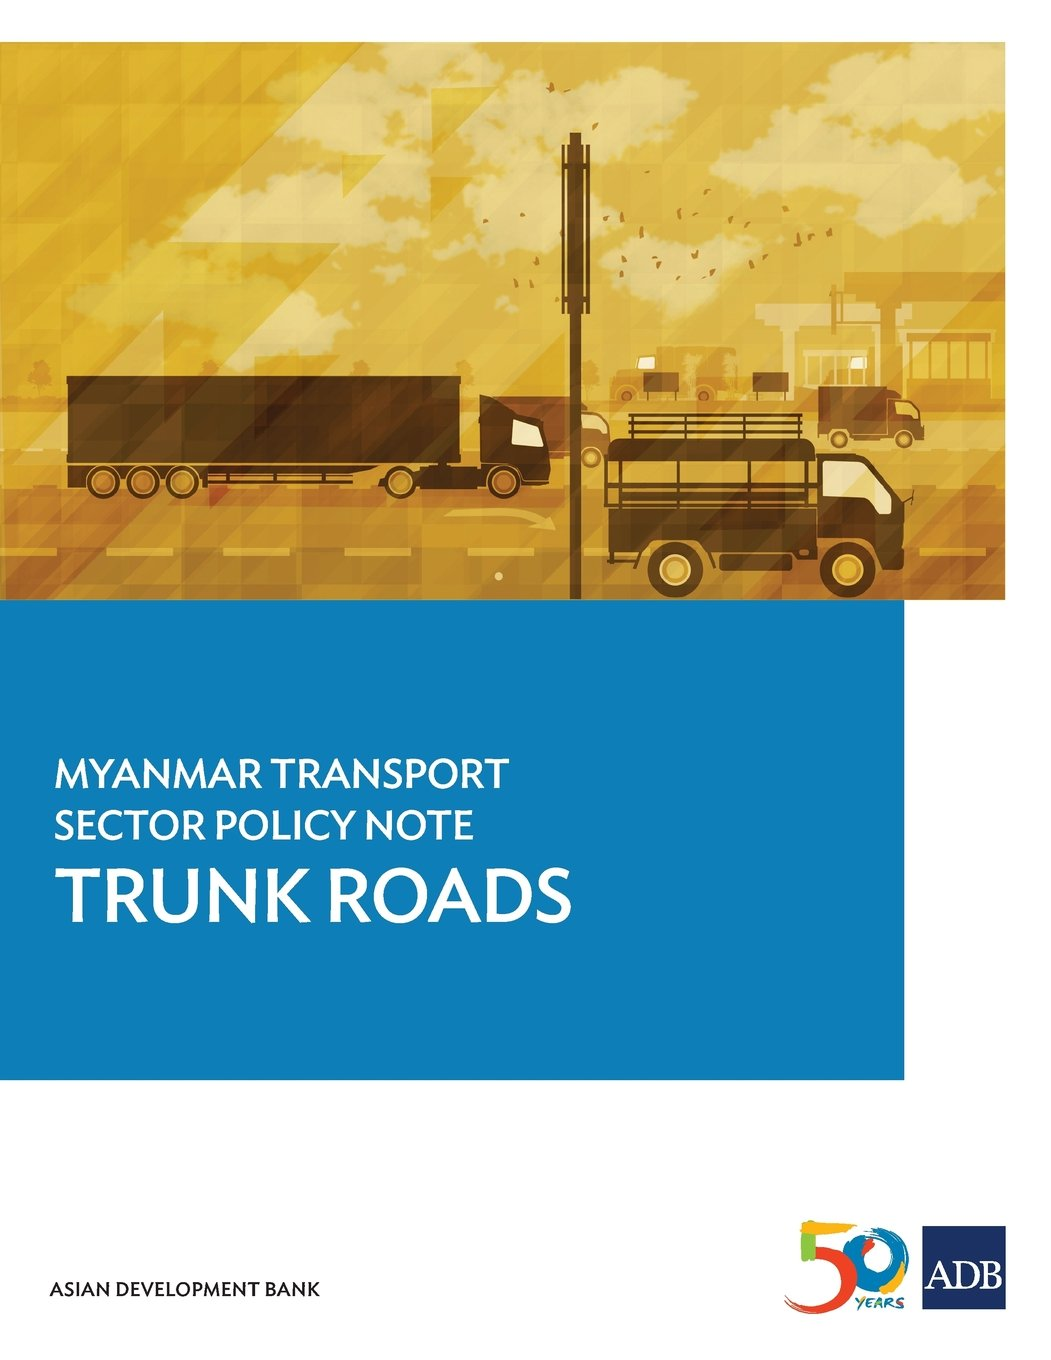 Myanmar Transport Sector Policy Note: Trunk Roads